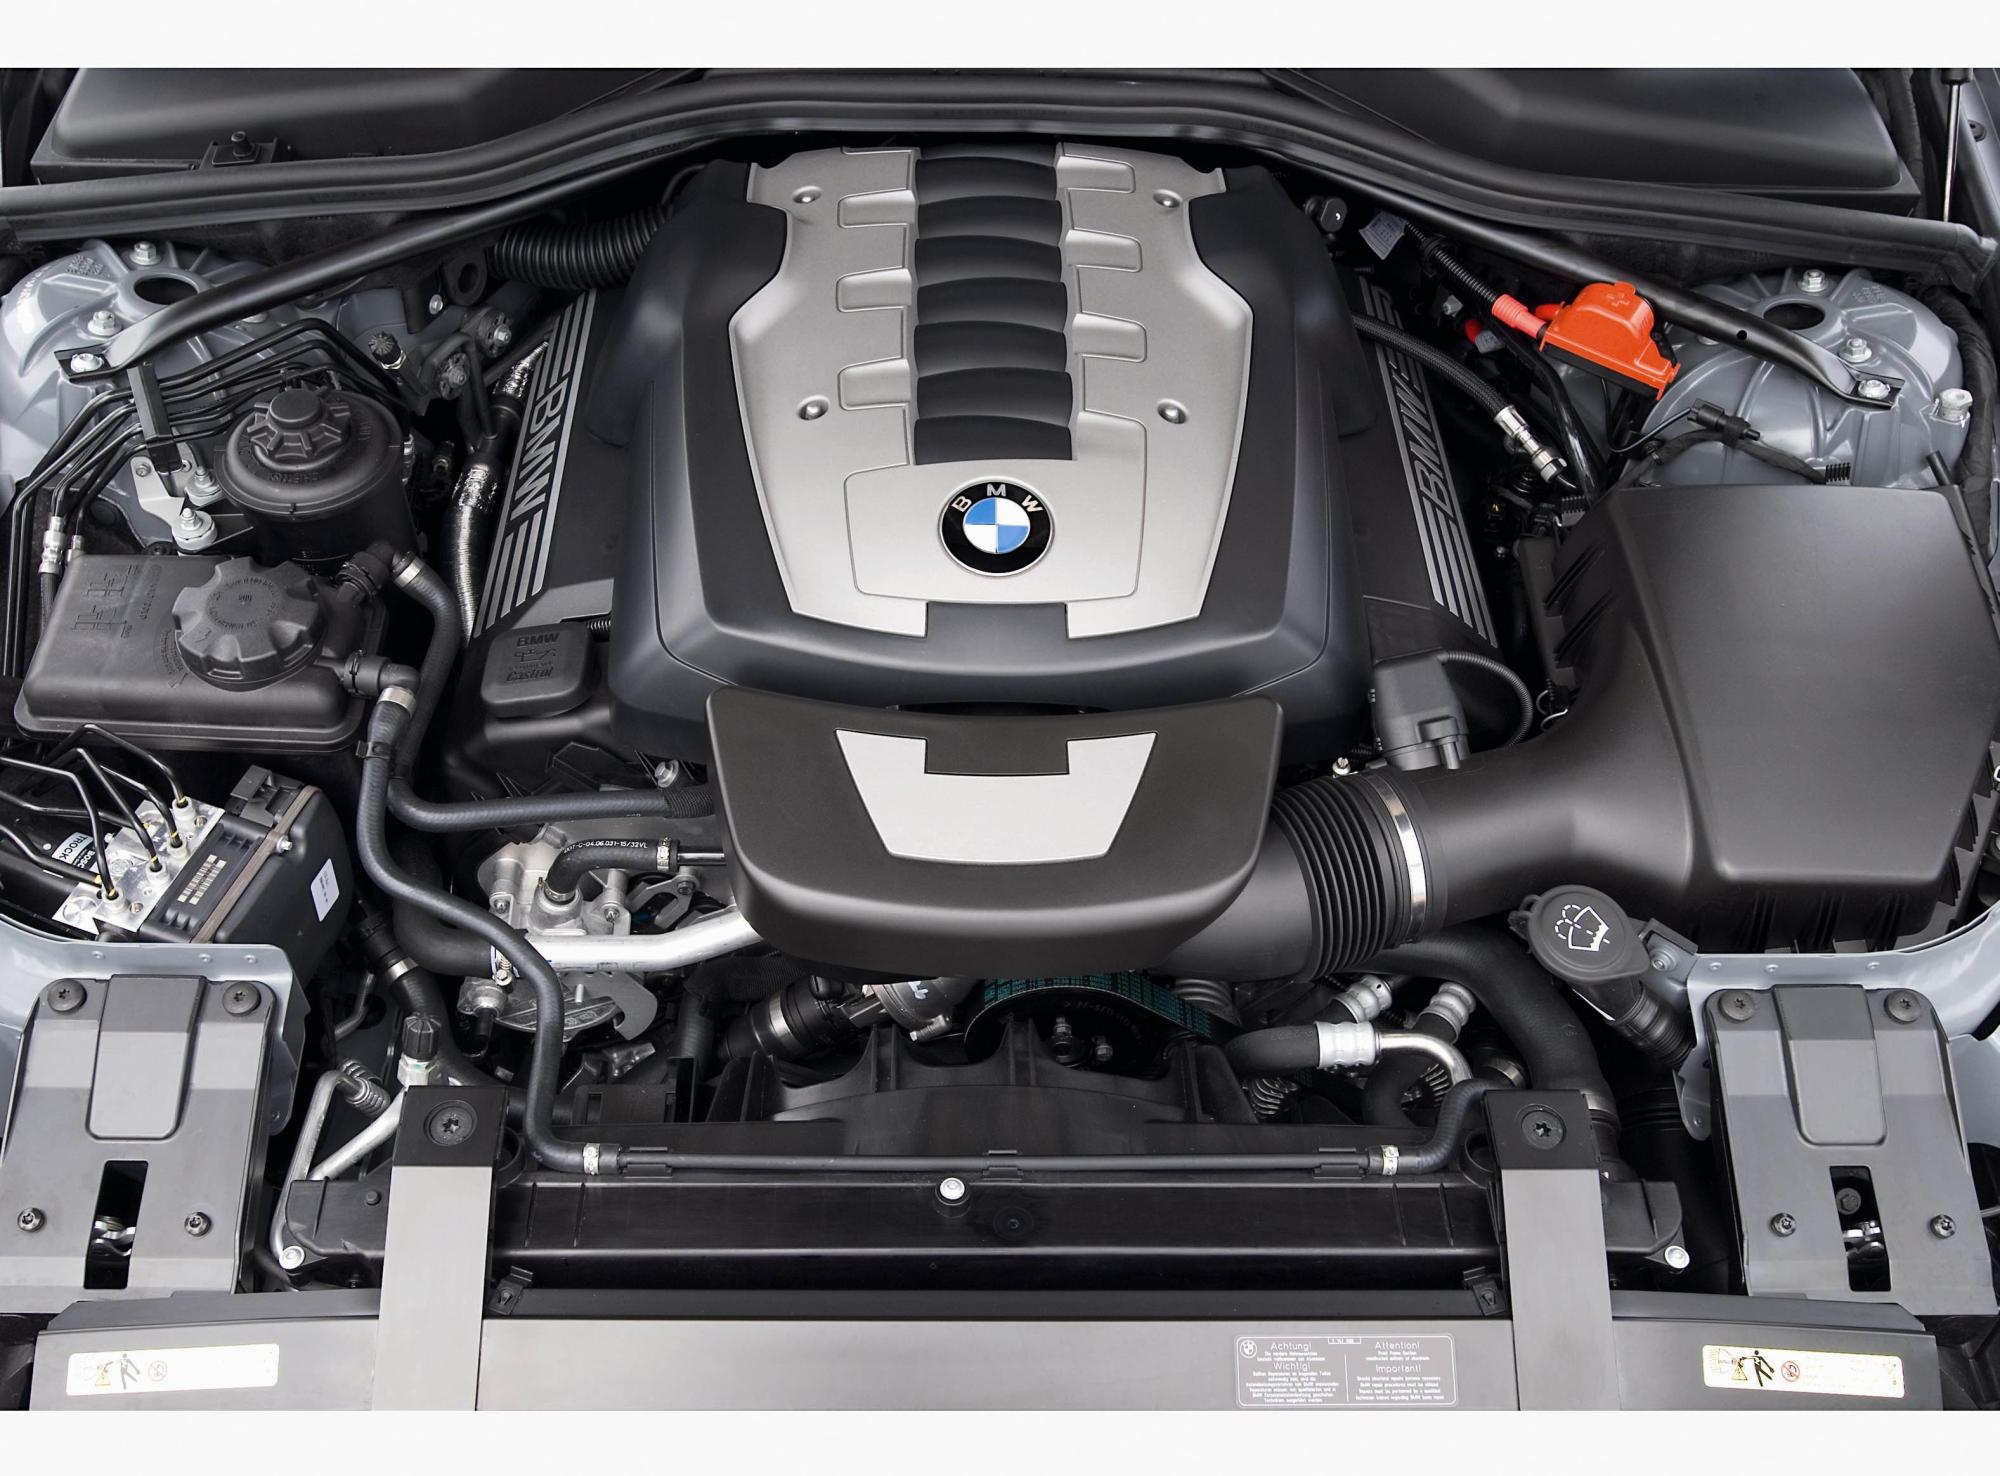 hight resolution of 2008 bmw 650 engine diagram wiring diagram origin 2012 bmw 6 series coupe bmw 650i engine diagram